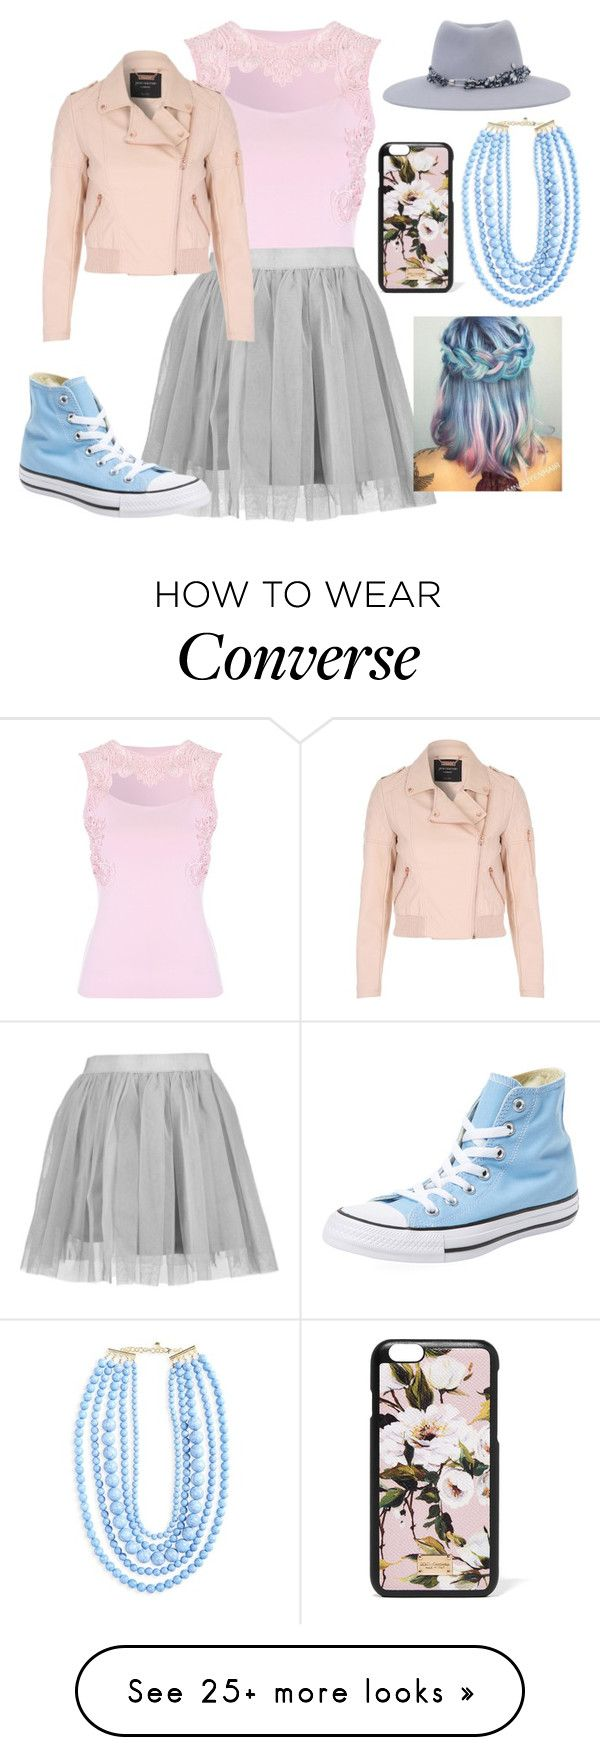 """Untitled #980"" by twisted-magic on Polyvore featuring Jane Norman, Boohoo, BaubleBar, Dolce&Gabbana, Maison Michel and Converse"